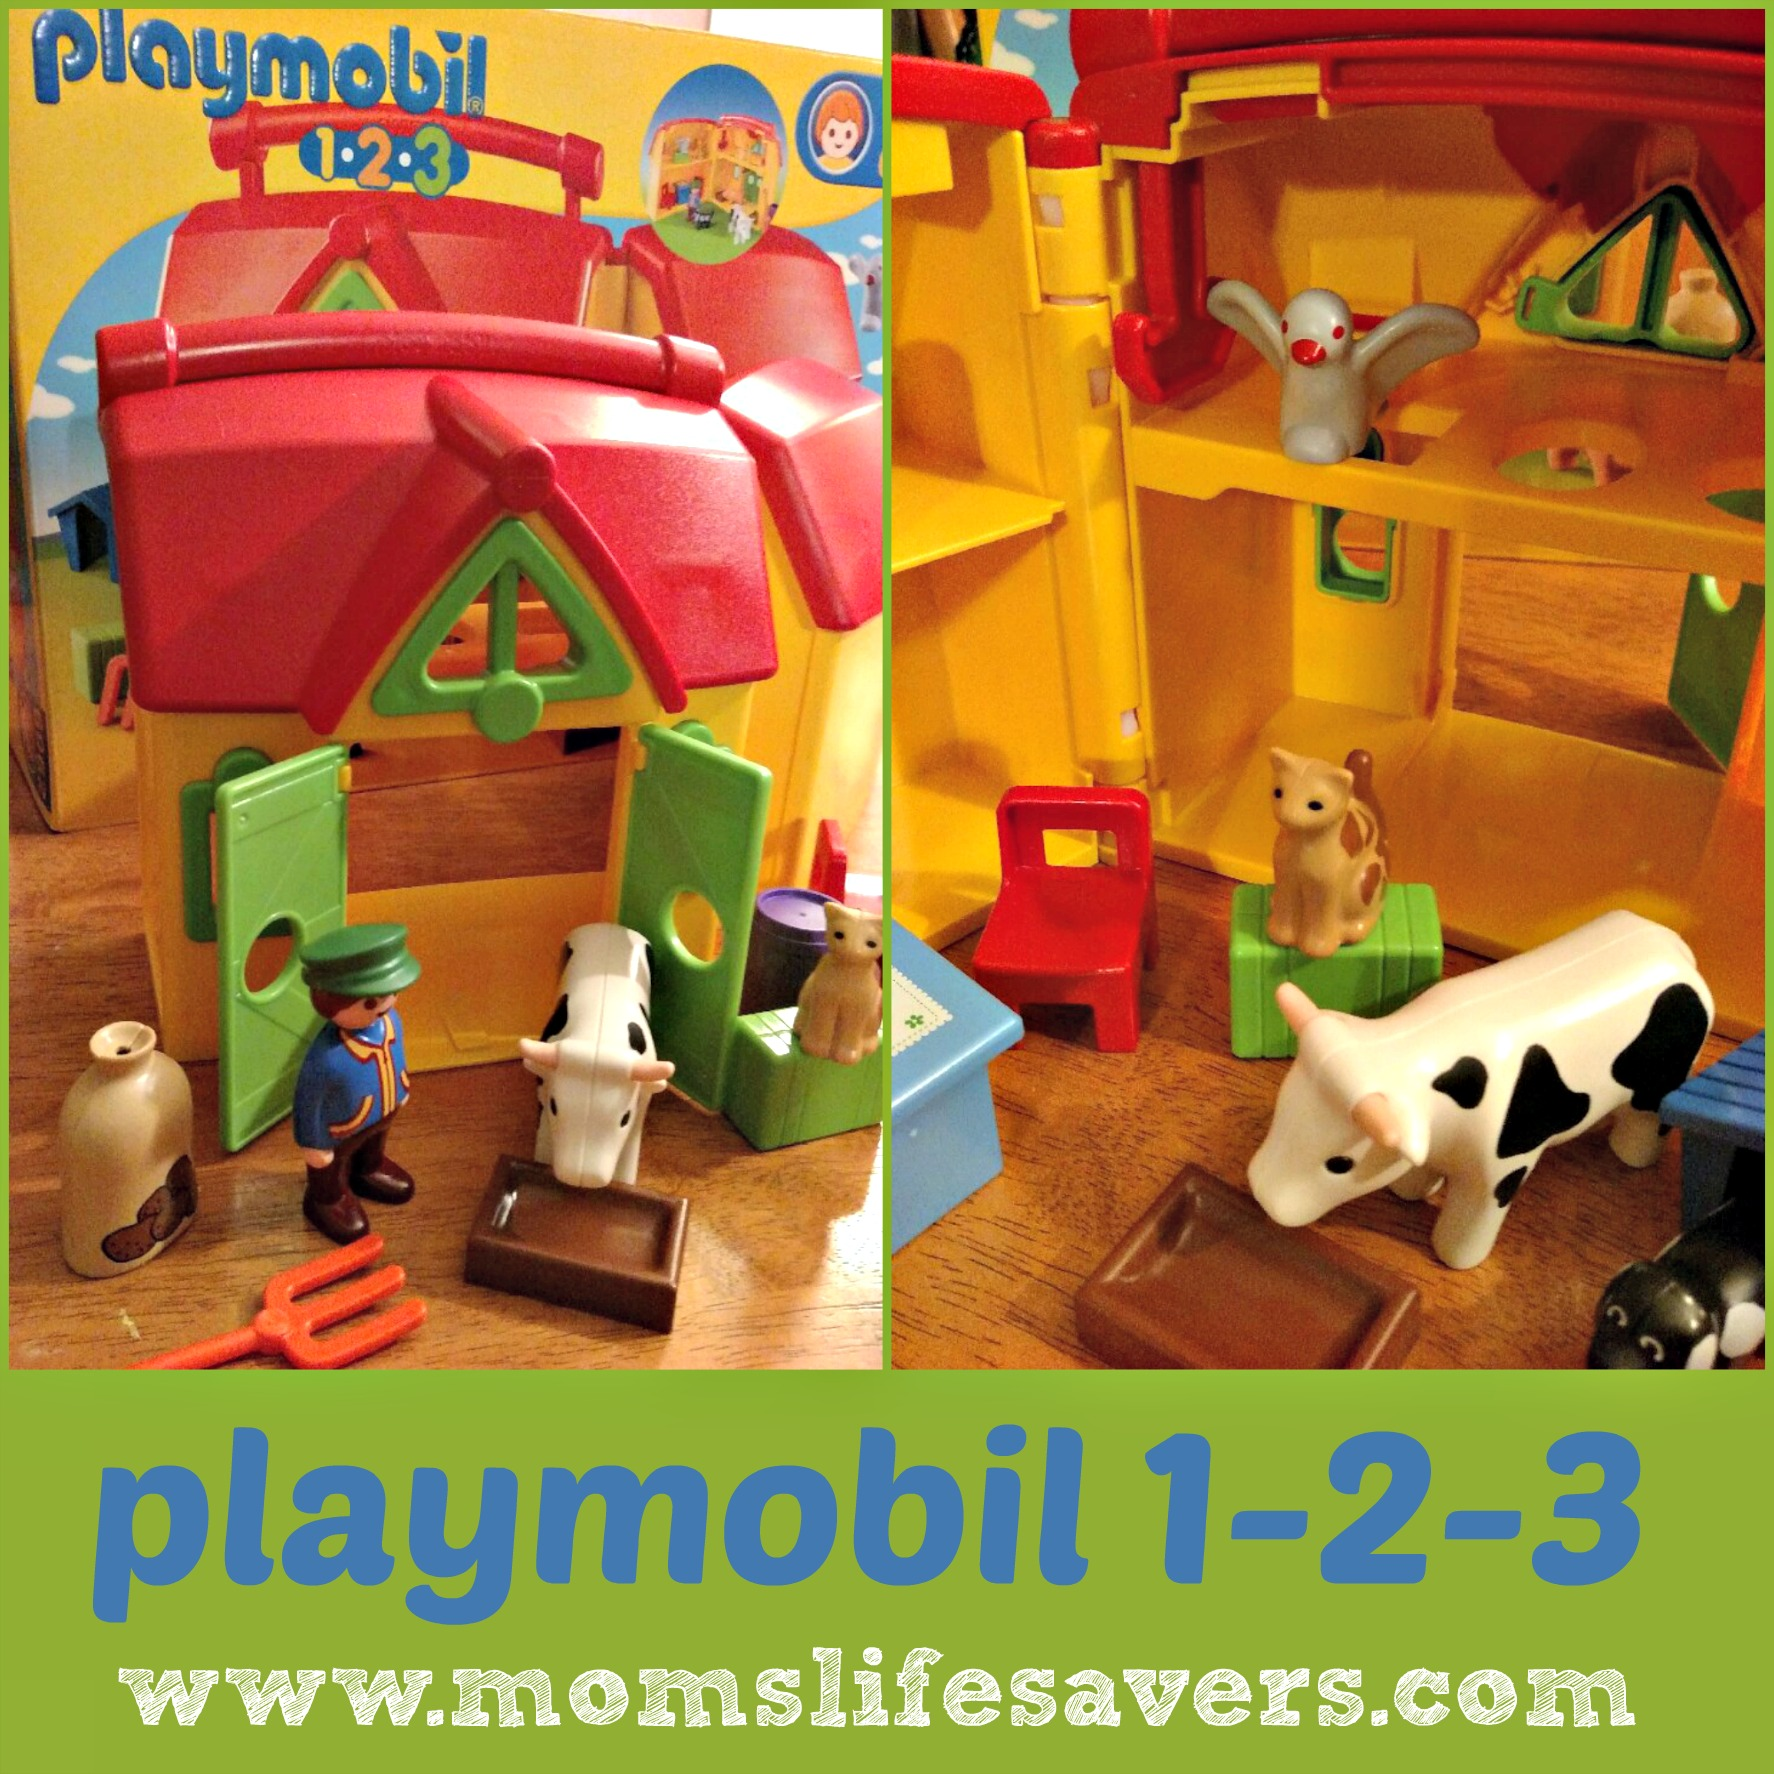 ML-Playmobil123-Featured